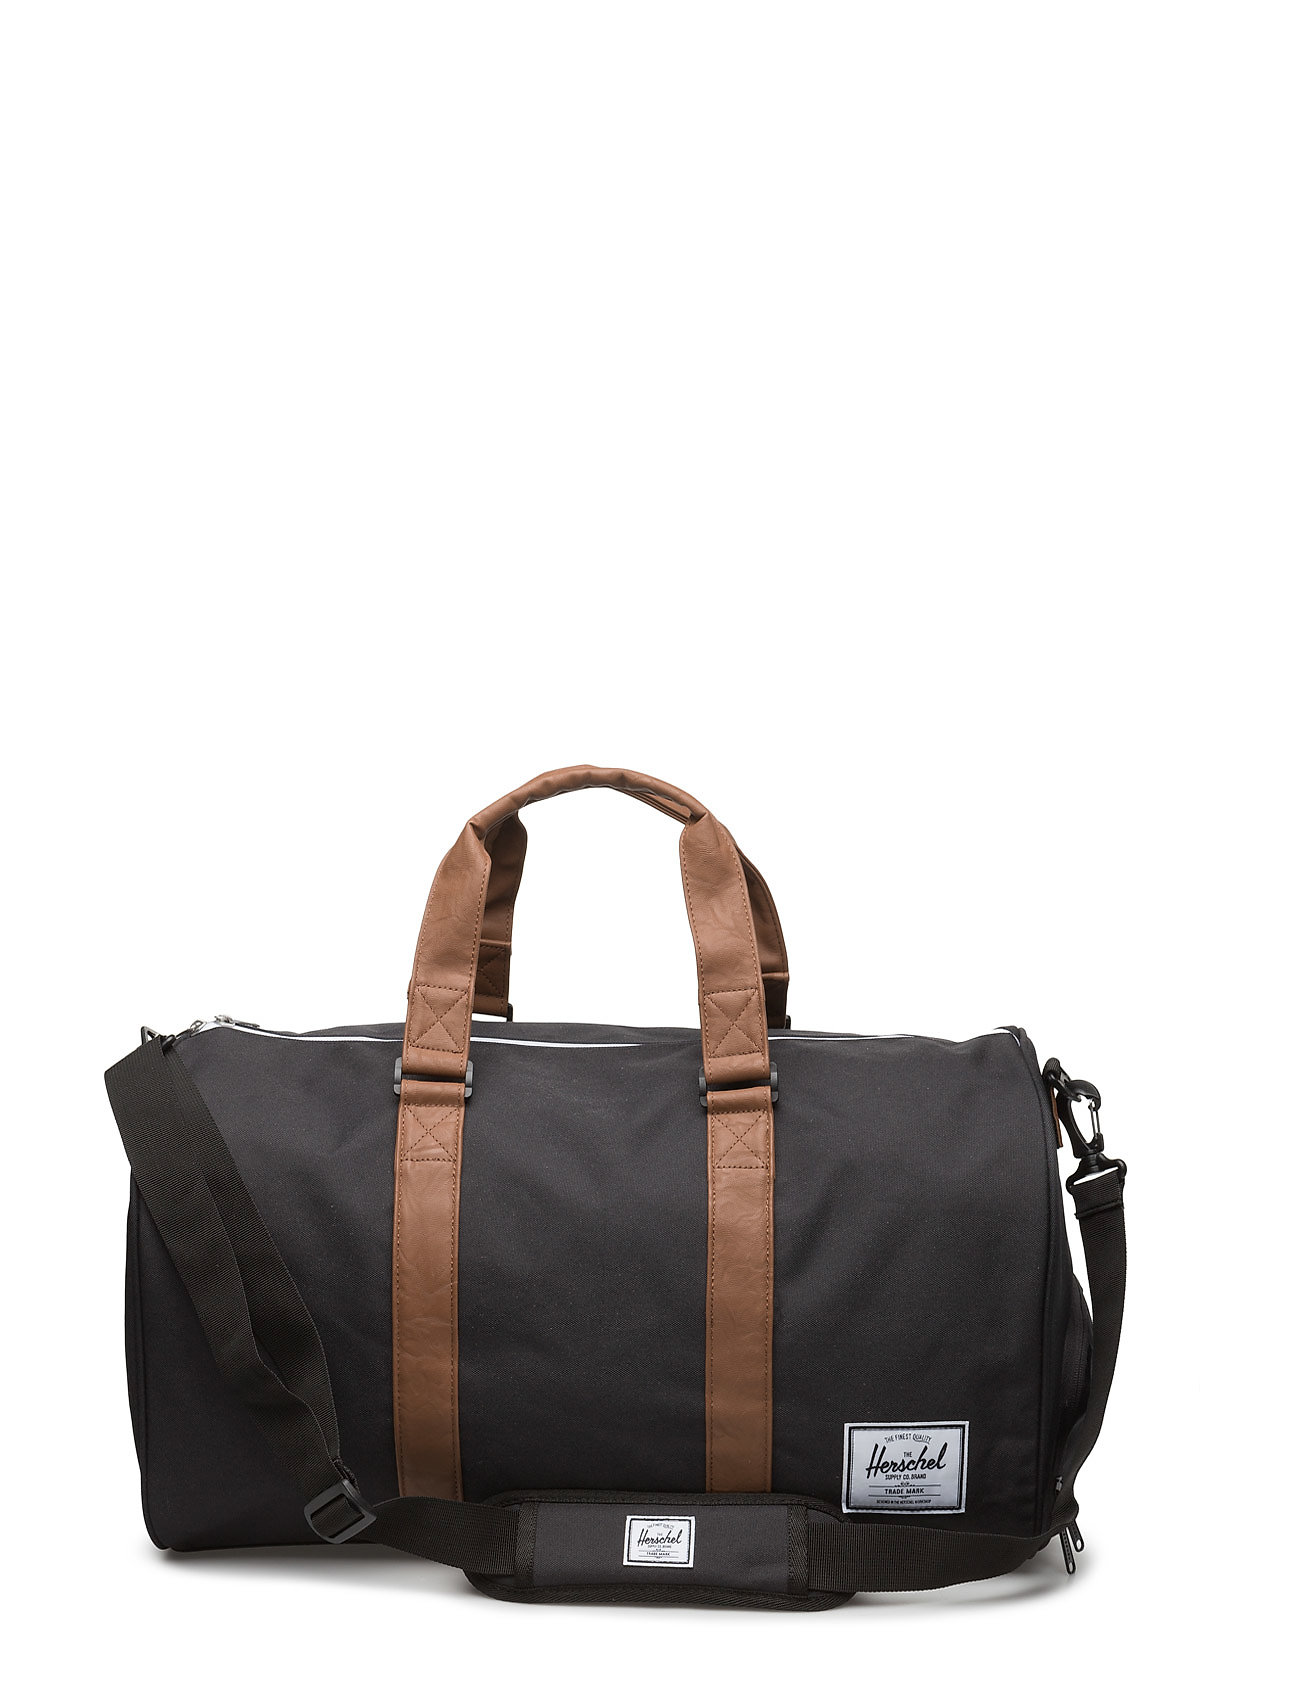 Herschel NOVEL - BLACK